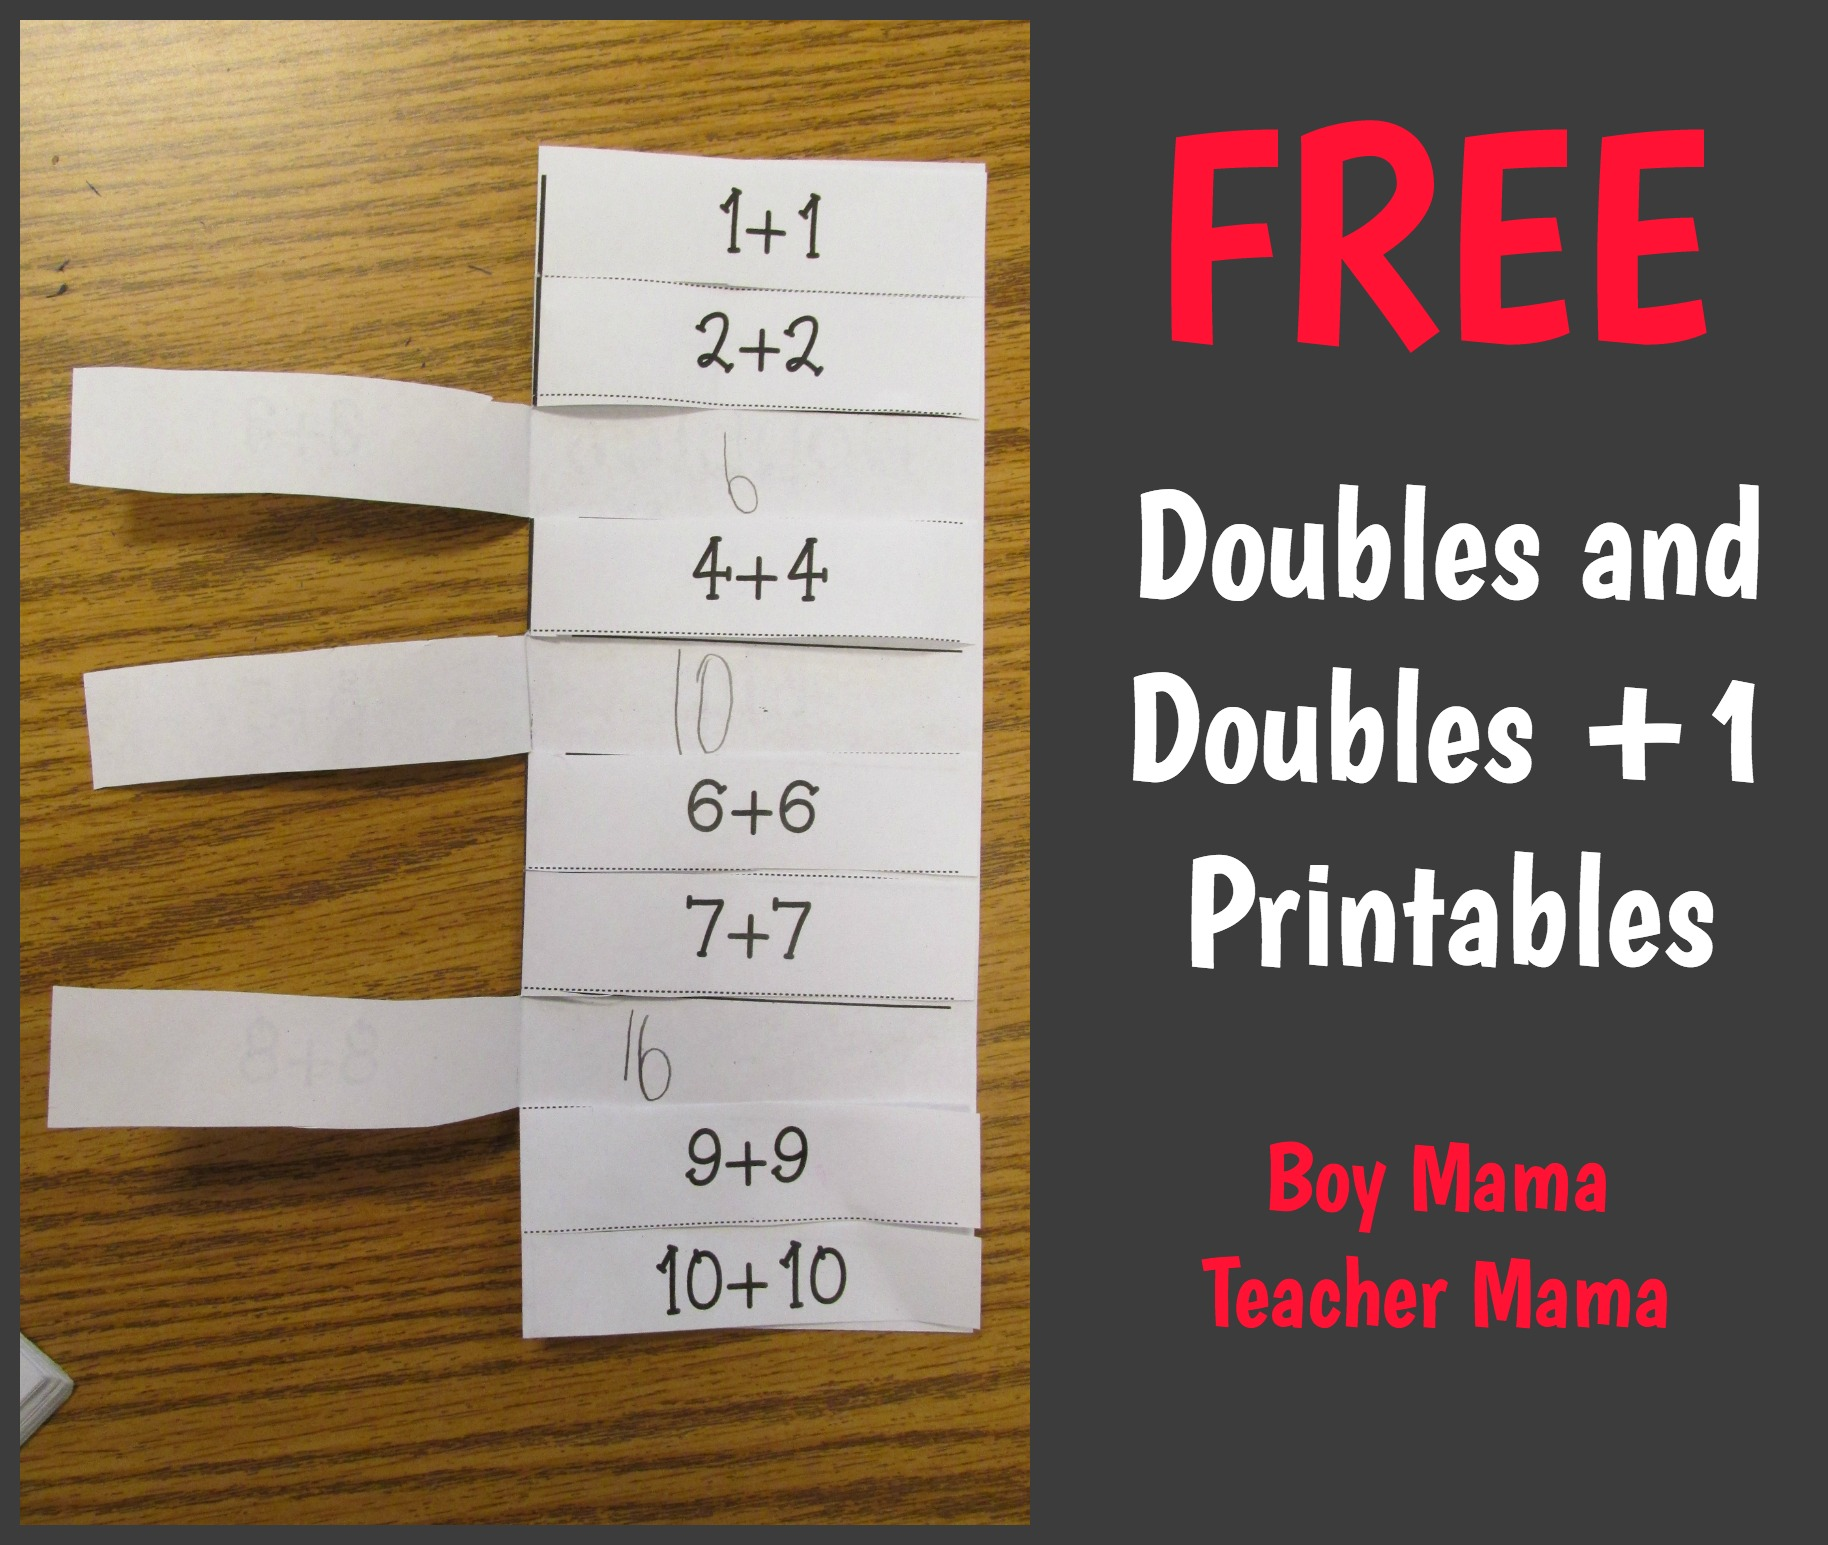 worksheet Doubles Facts doubles facts archives boy mama teacher free and 1 printables updated templates now available cards are important for students to kno